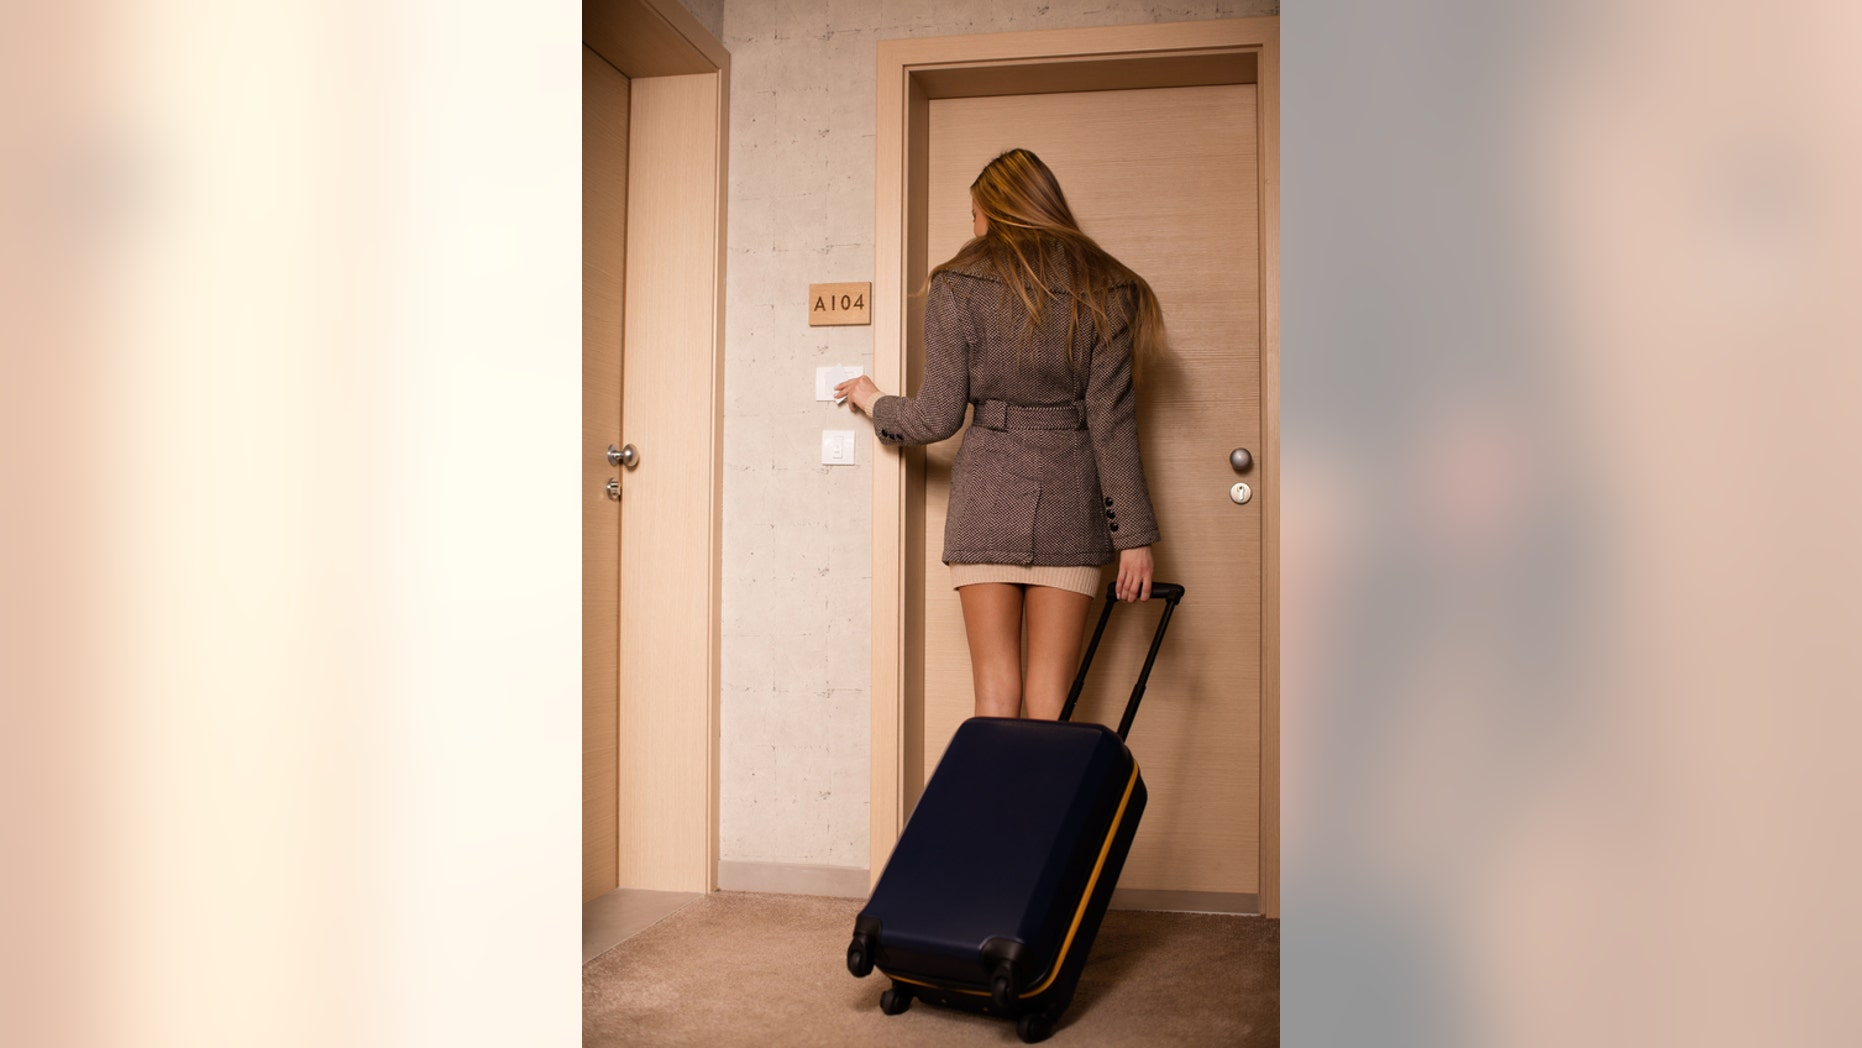 What's really behind that hotel room door?